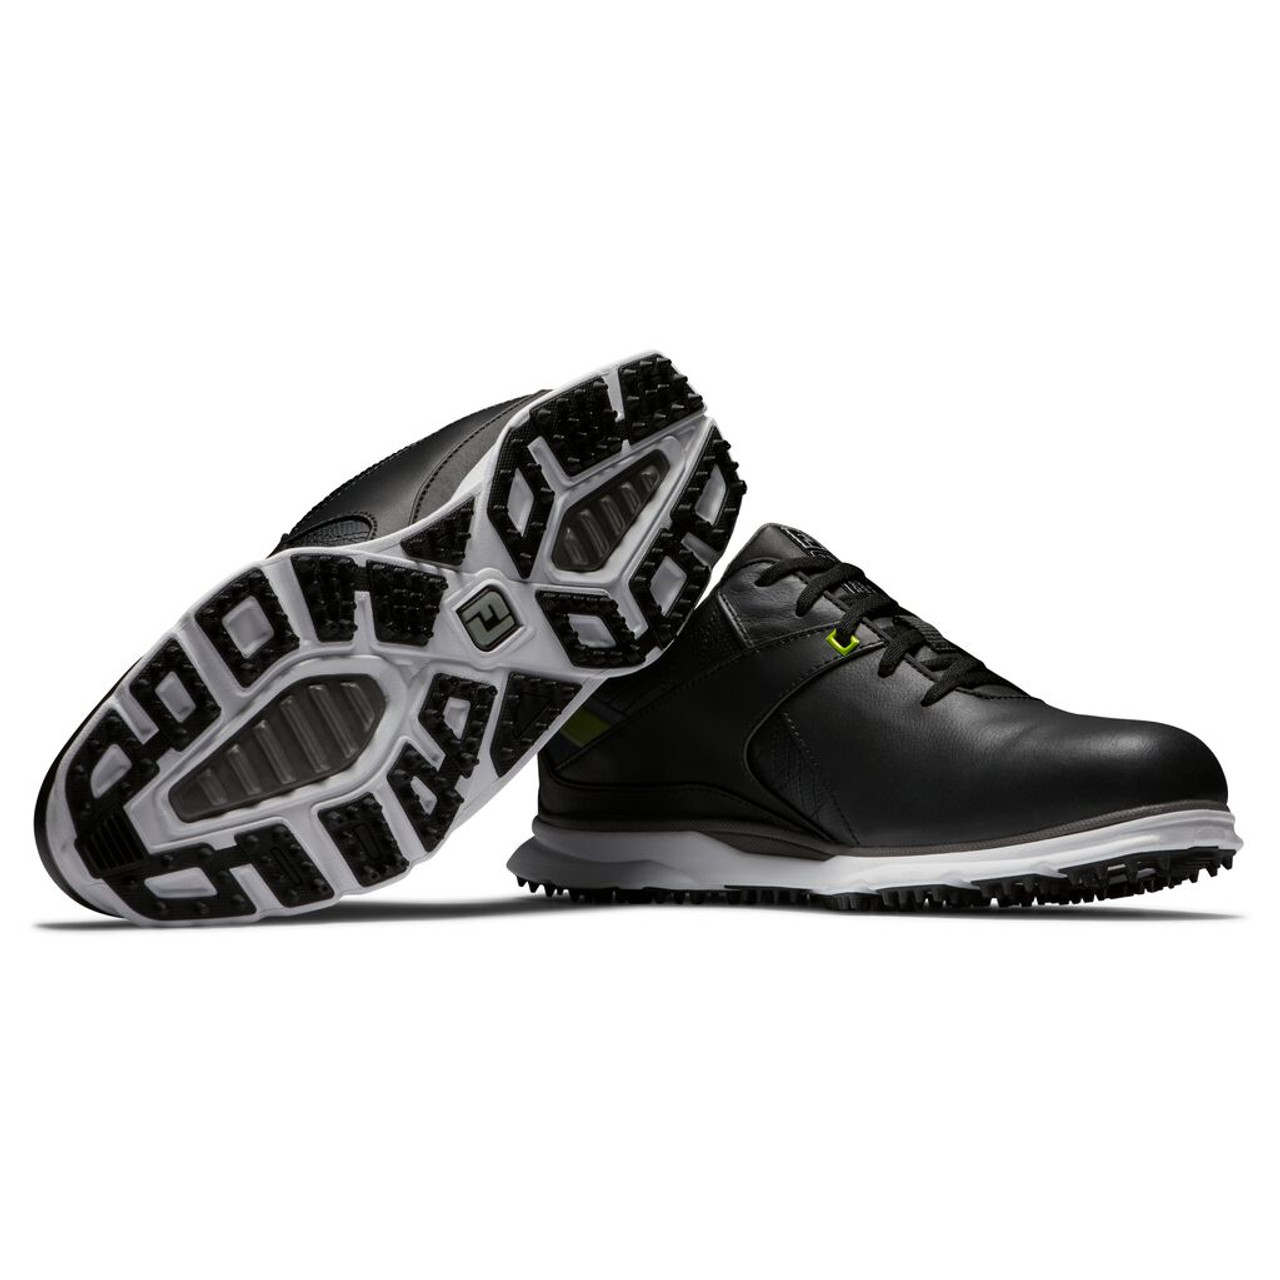 FootJoy Pro SL Golf Shoes - Black / Lime (53813)